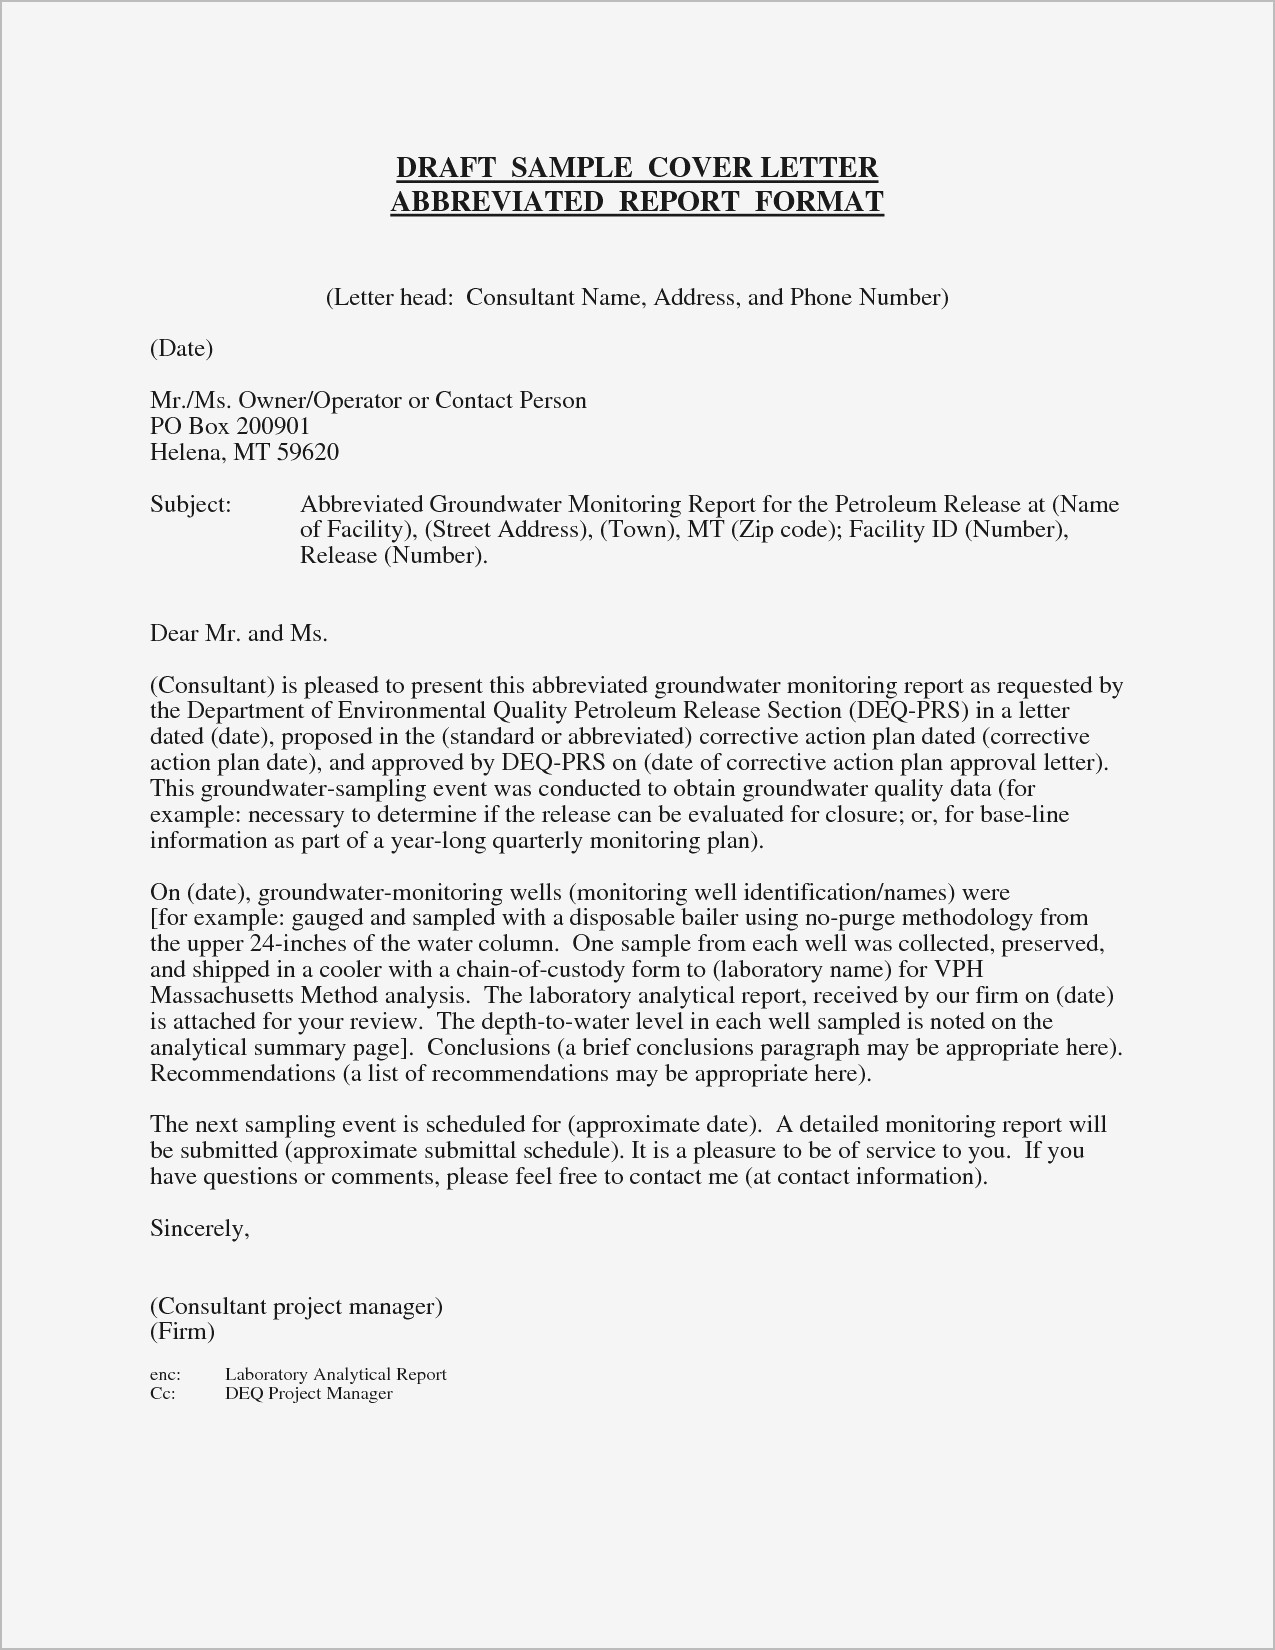 Sample Cover Letter For Law Firm from miro.medium.com